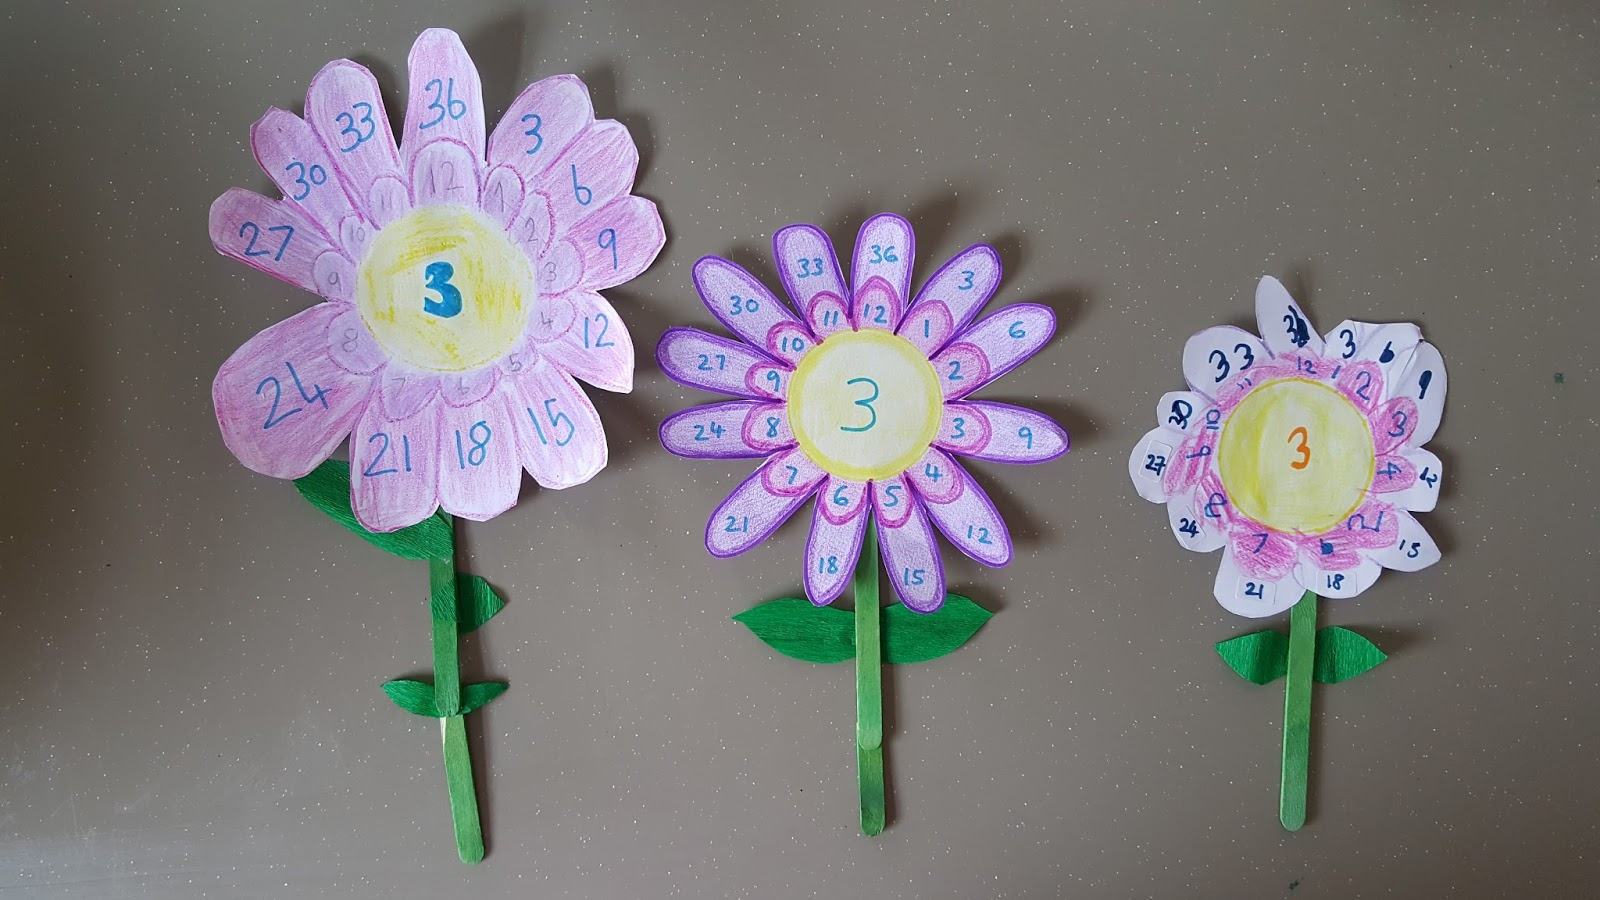 Waldorf Inspired Multiplication Crafts